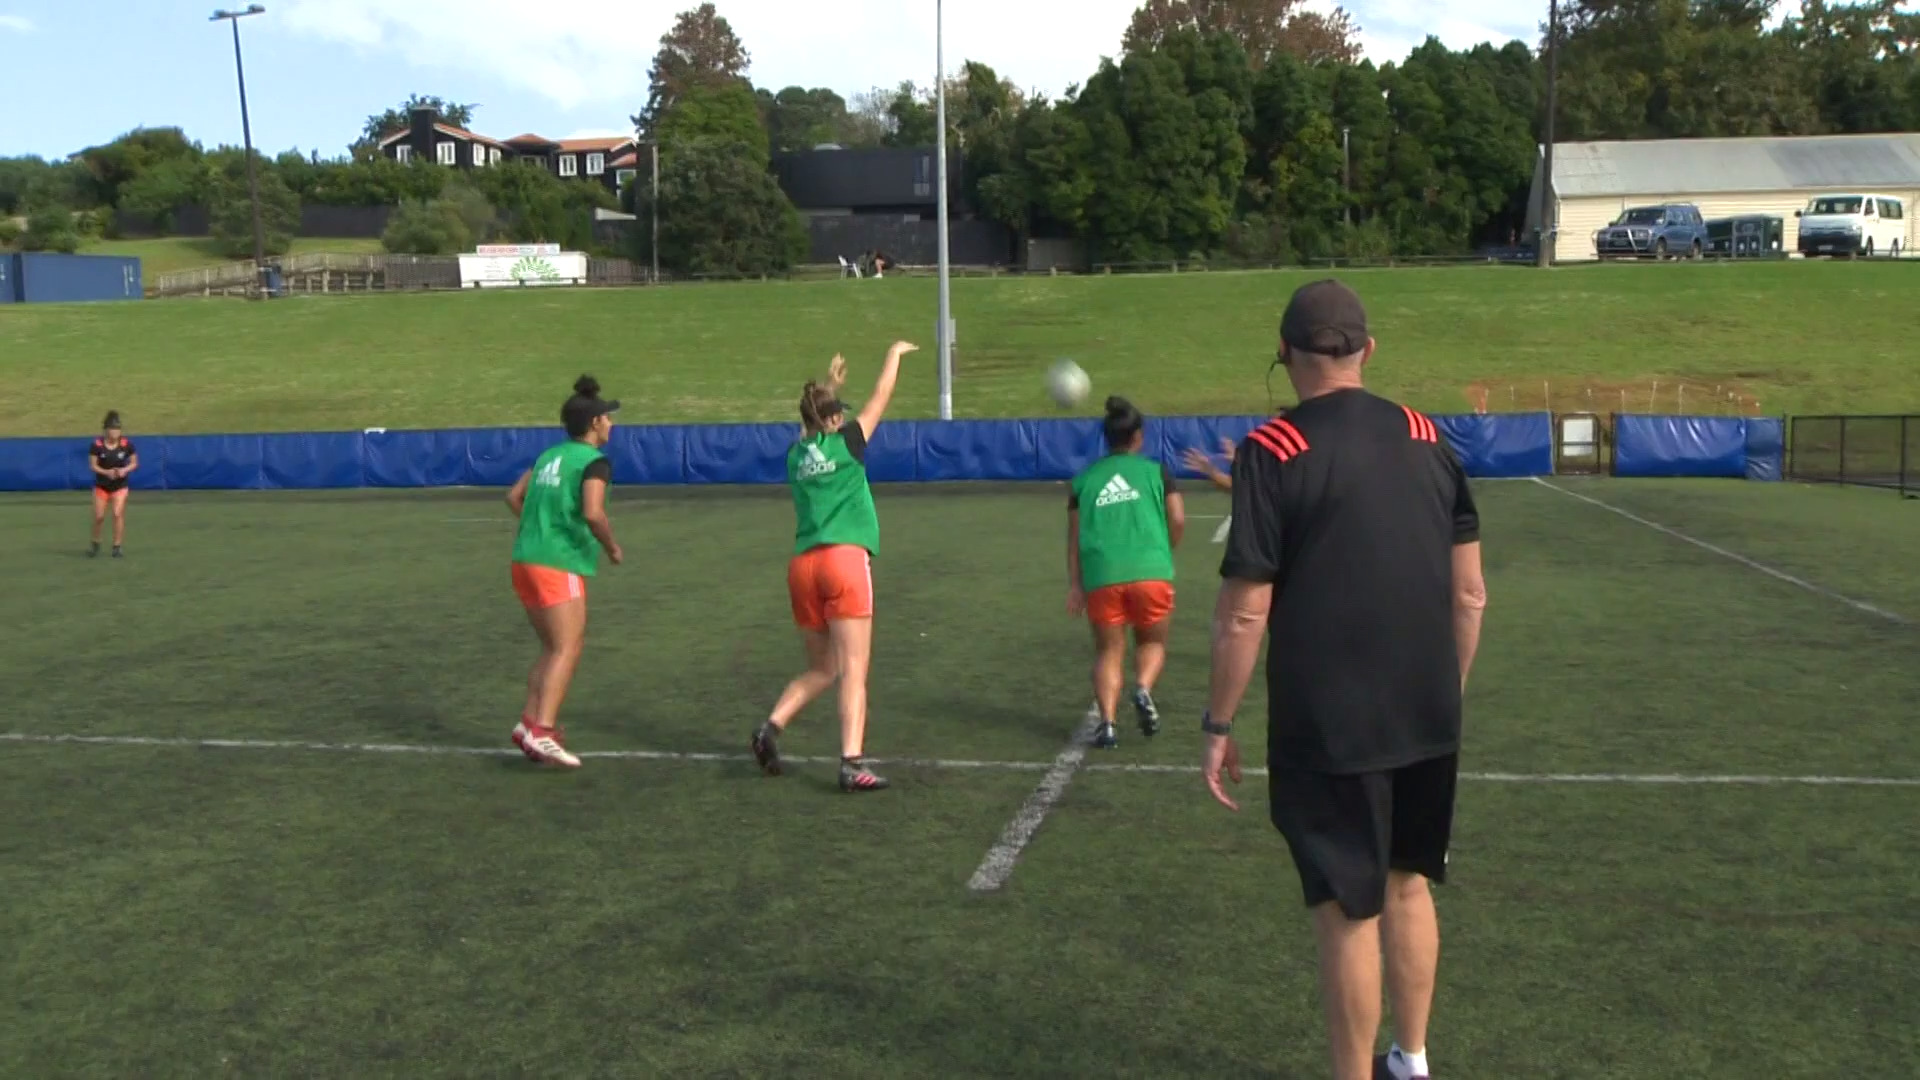 Video for U18 wāhine sevens set for Youth Olympics